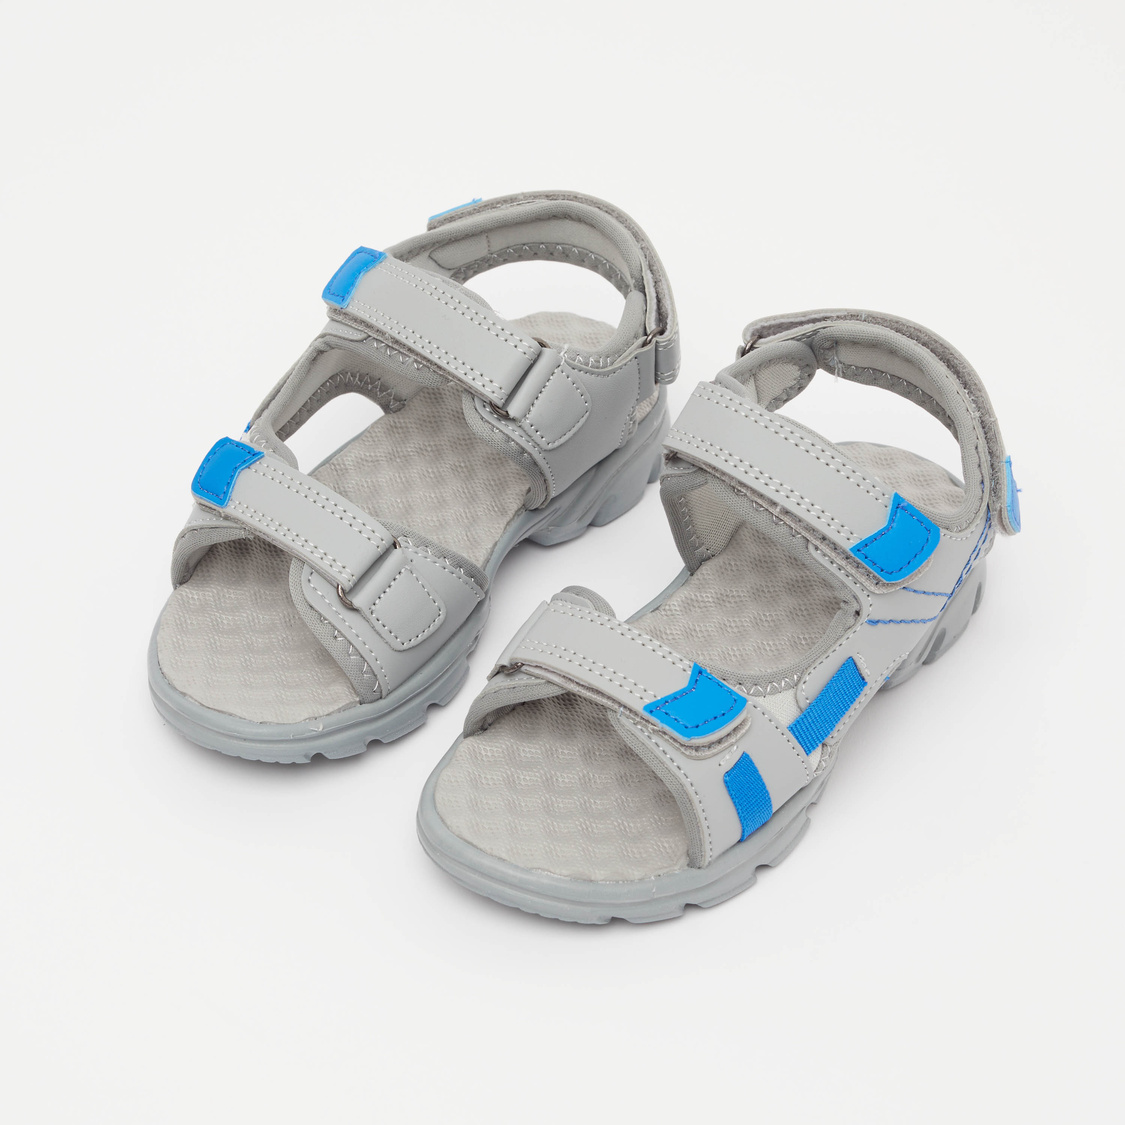 Cutout Sandals with Hook and Loop Closures